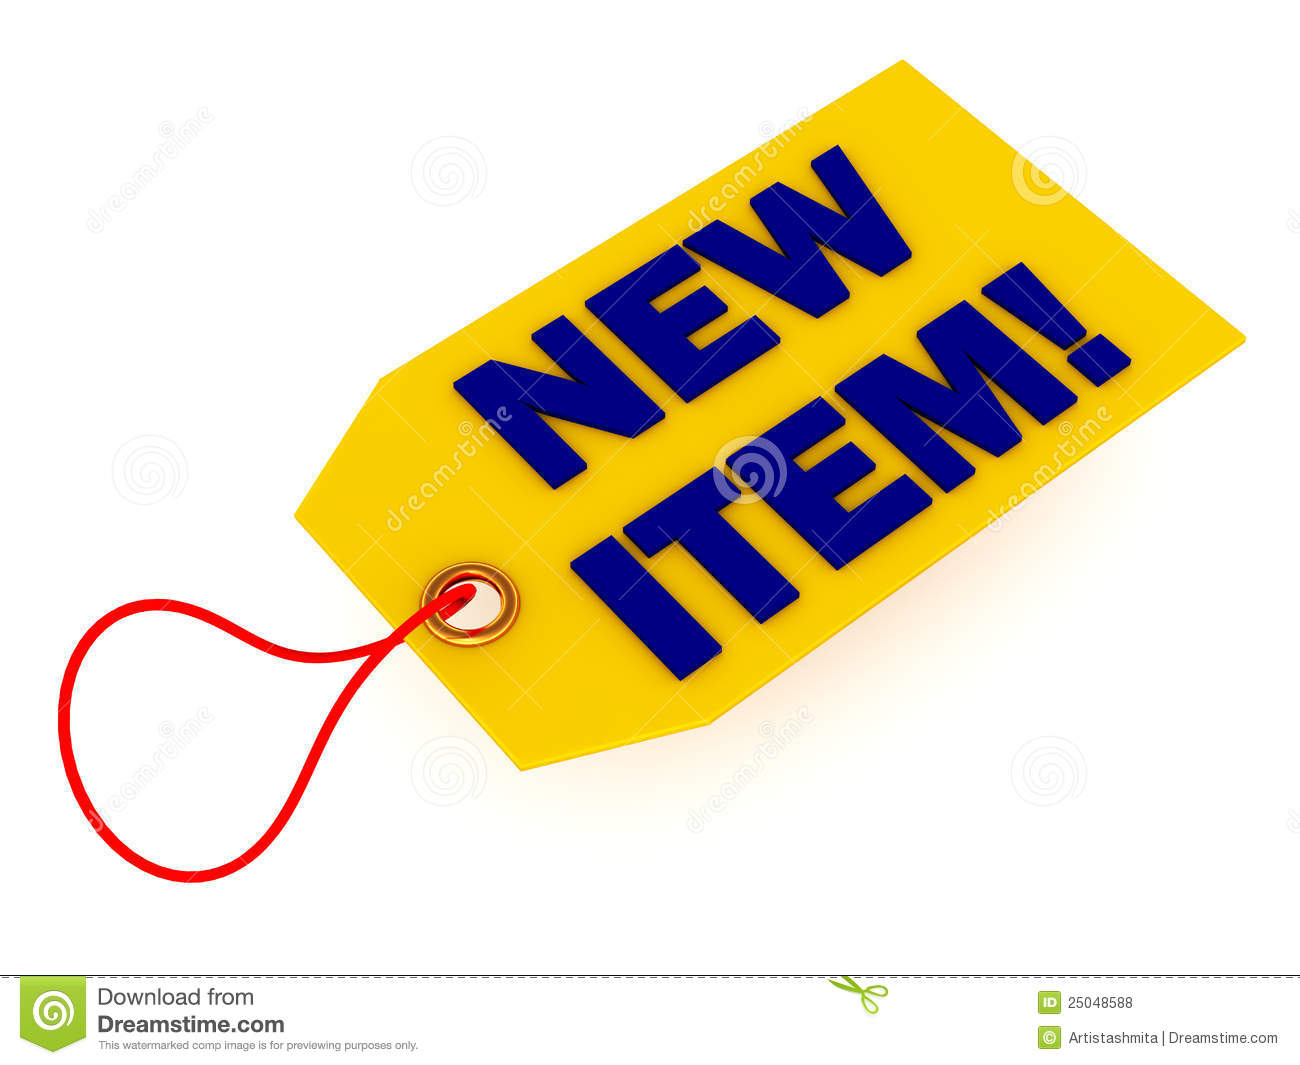 Item: New Product Item In Store Stock Illustration. Illustration